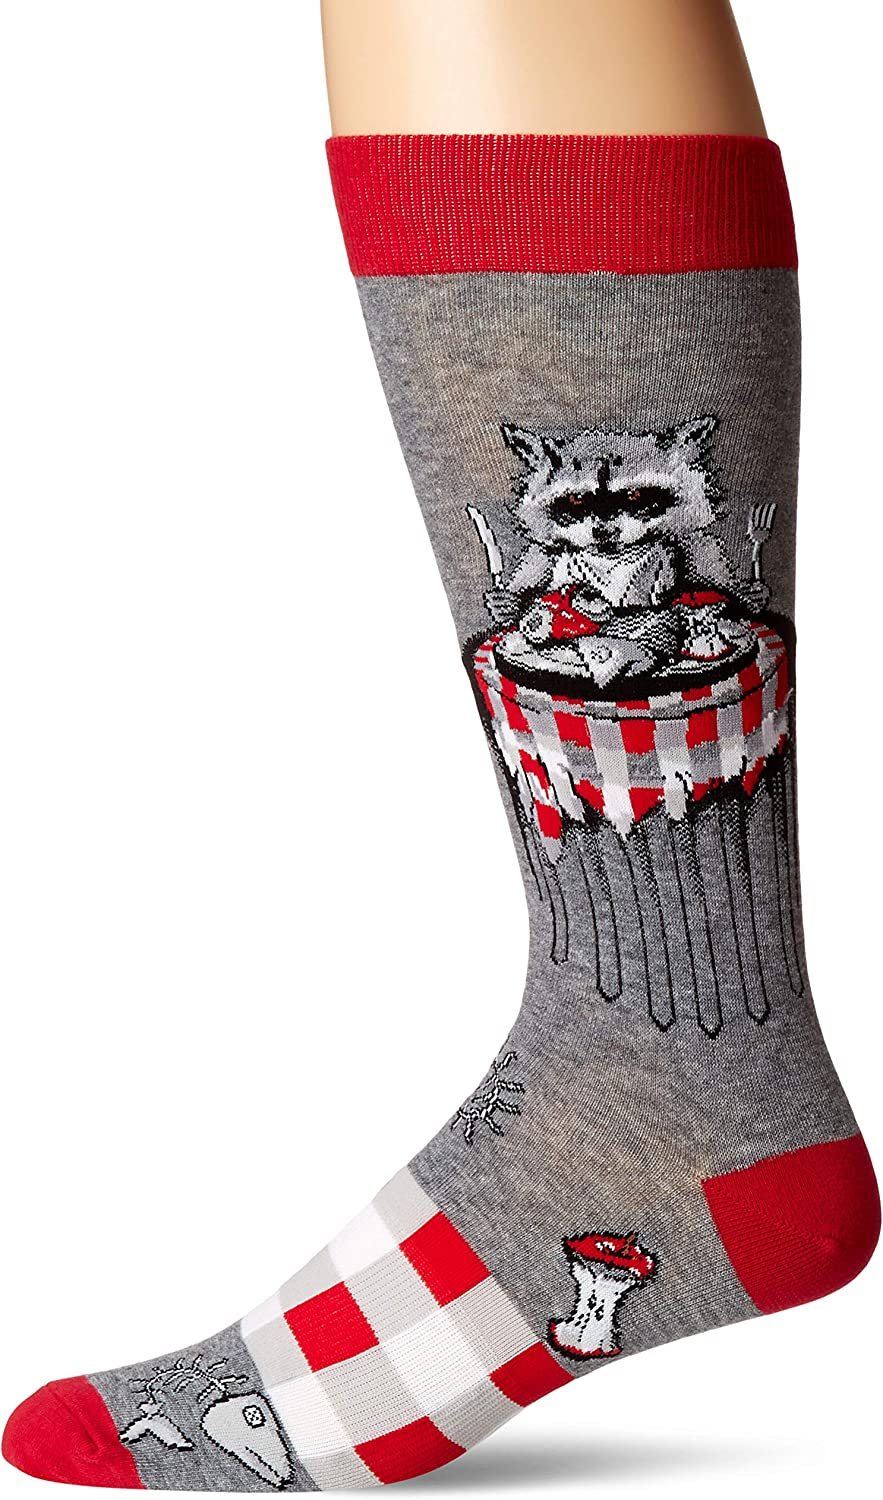 K Bell Socks mens Pop Culture Slapstick Fun Novelty Crew Socks Casual Sock